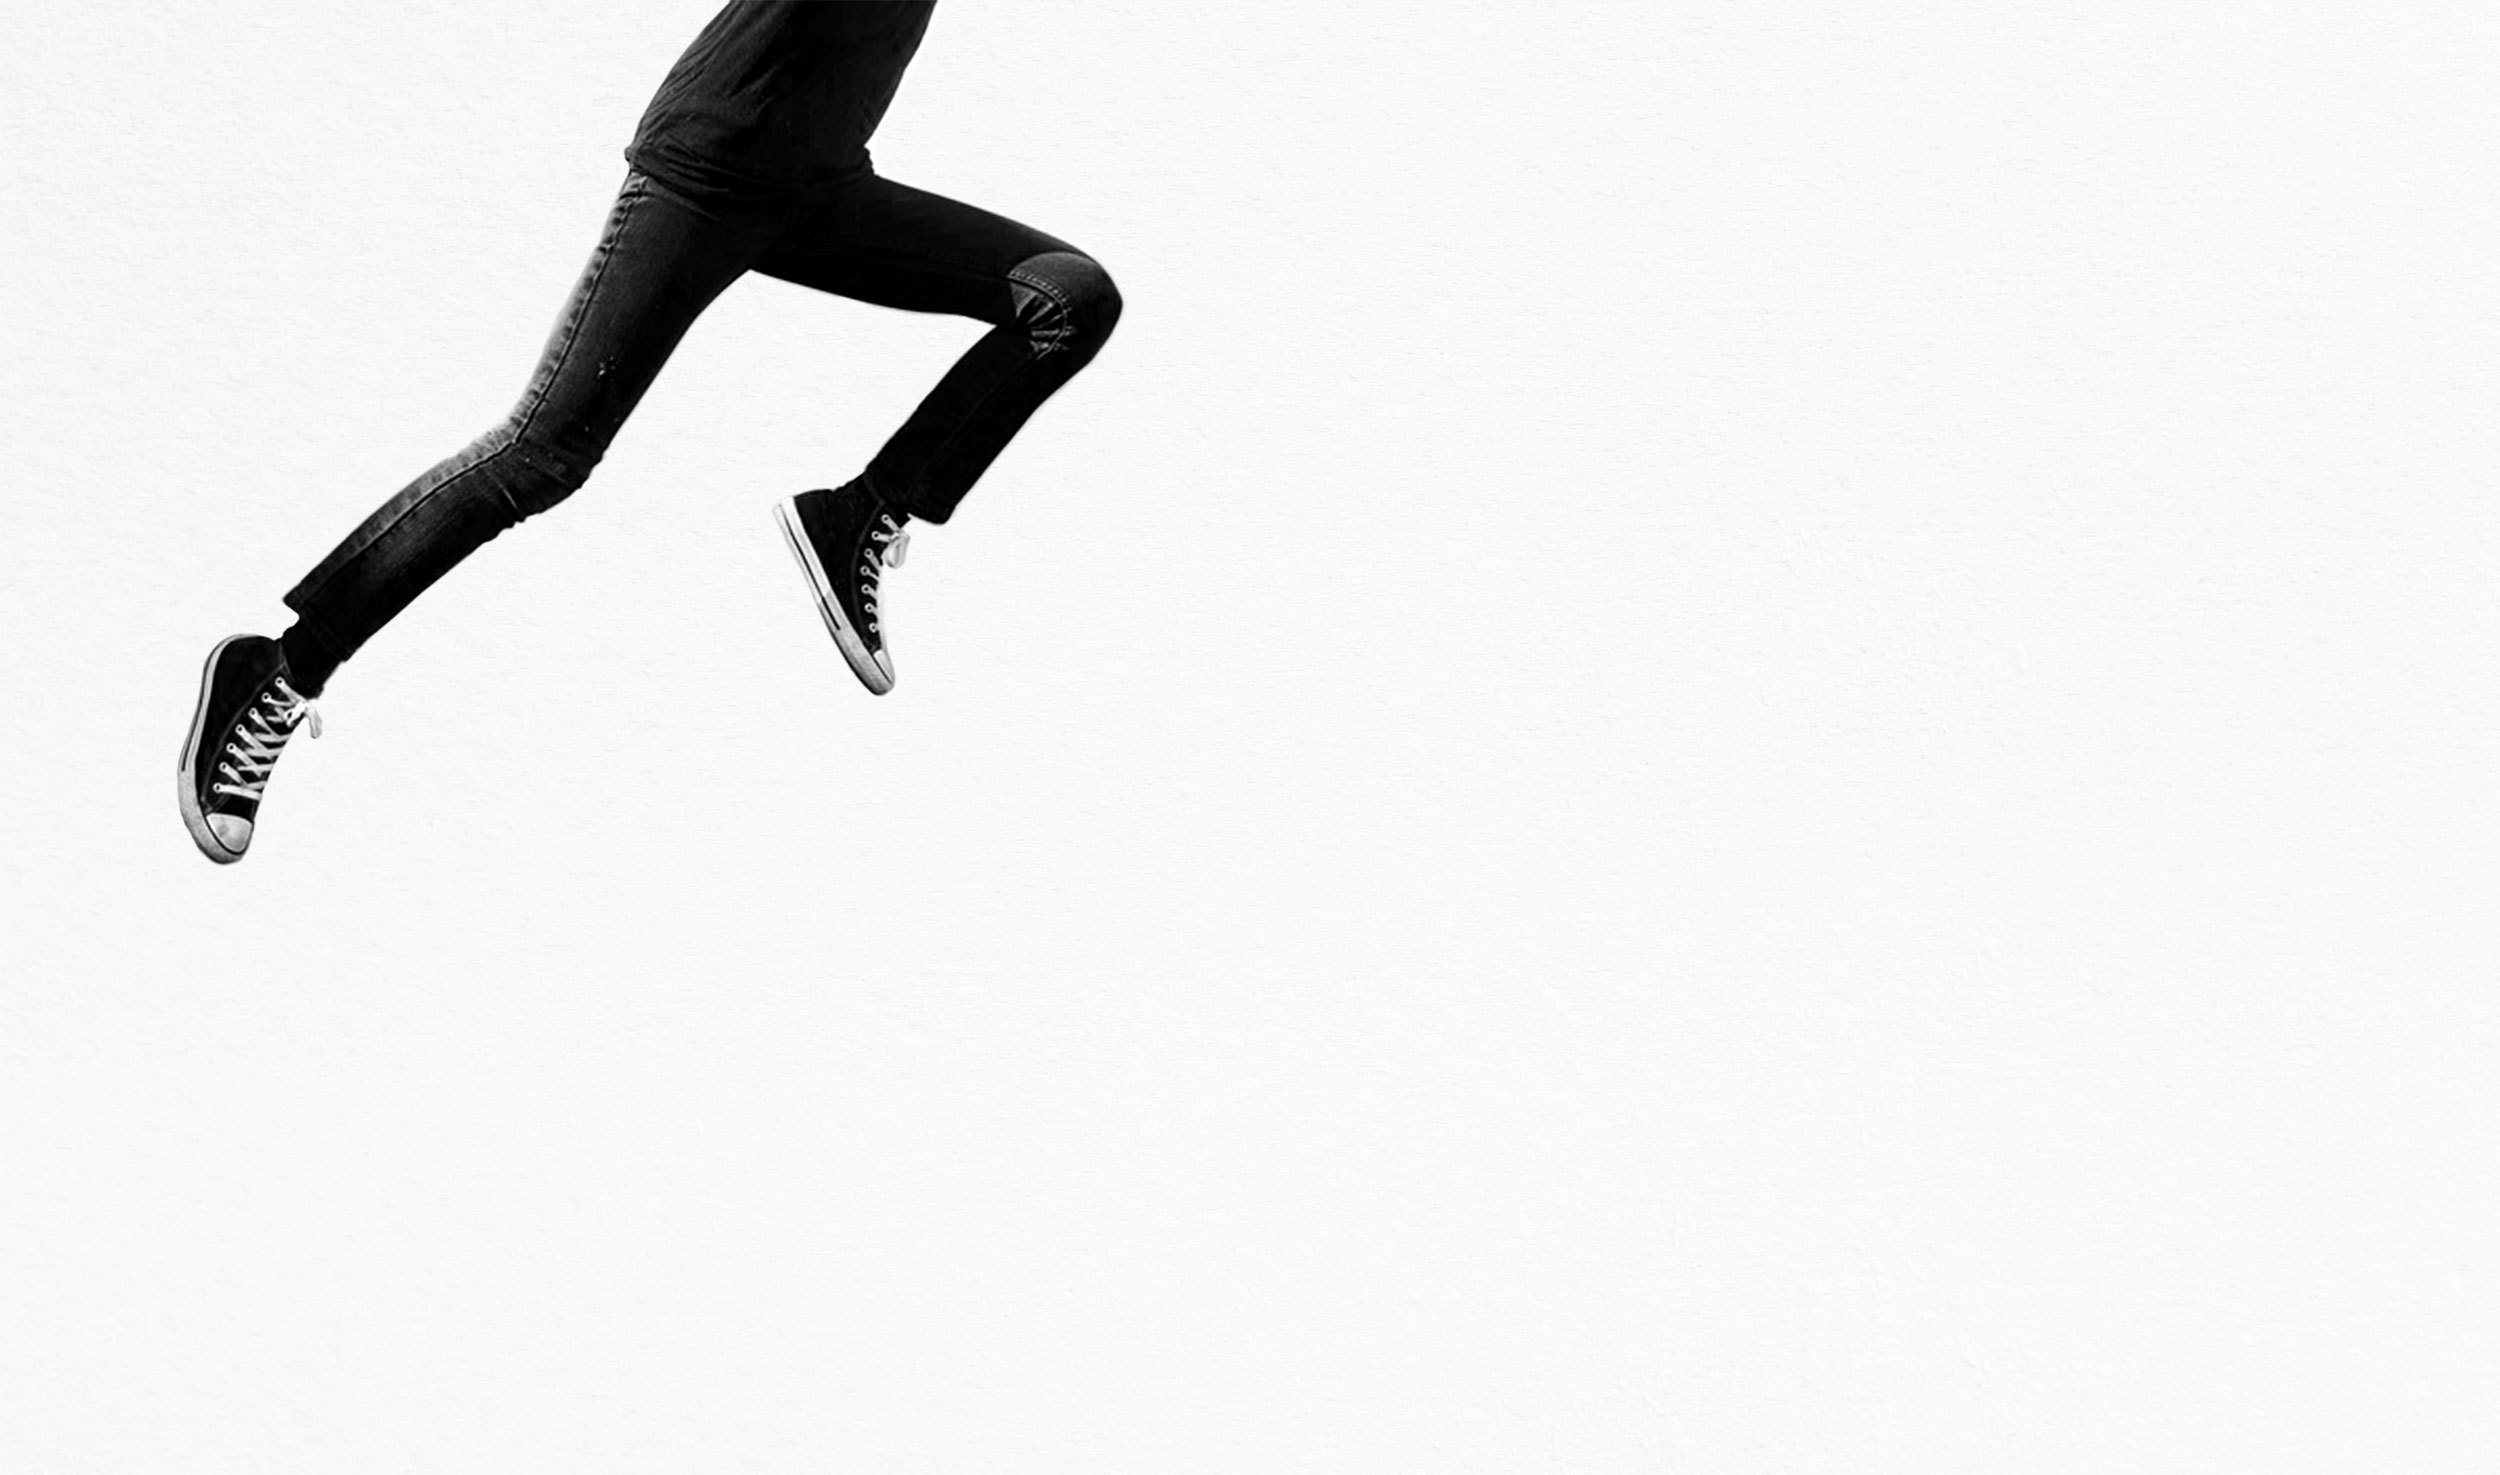 Man in jeans jumping